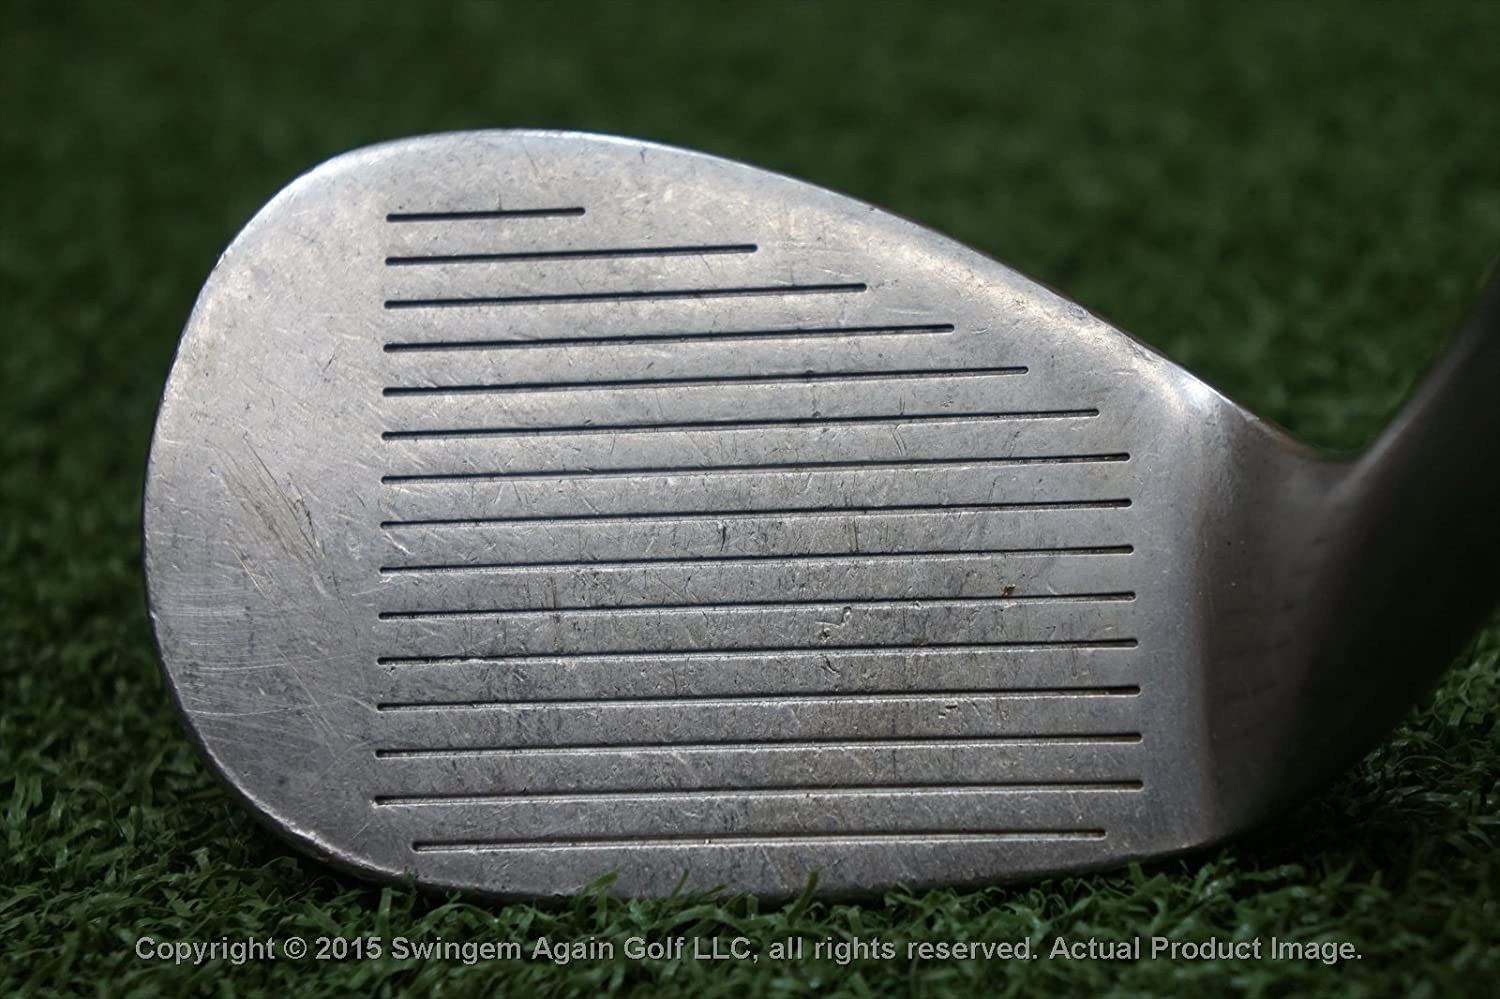 Ram Tom Watson Wedge para diestros acero 55 °: Amazon.es ...